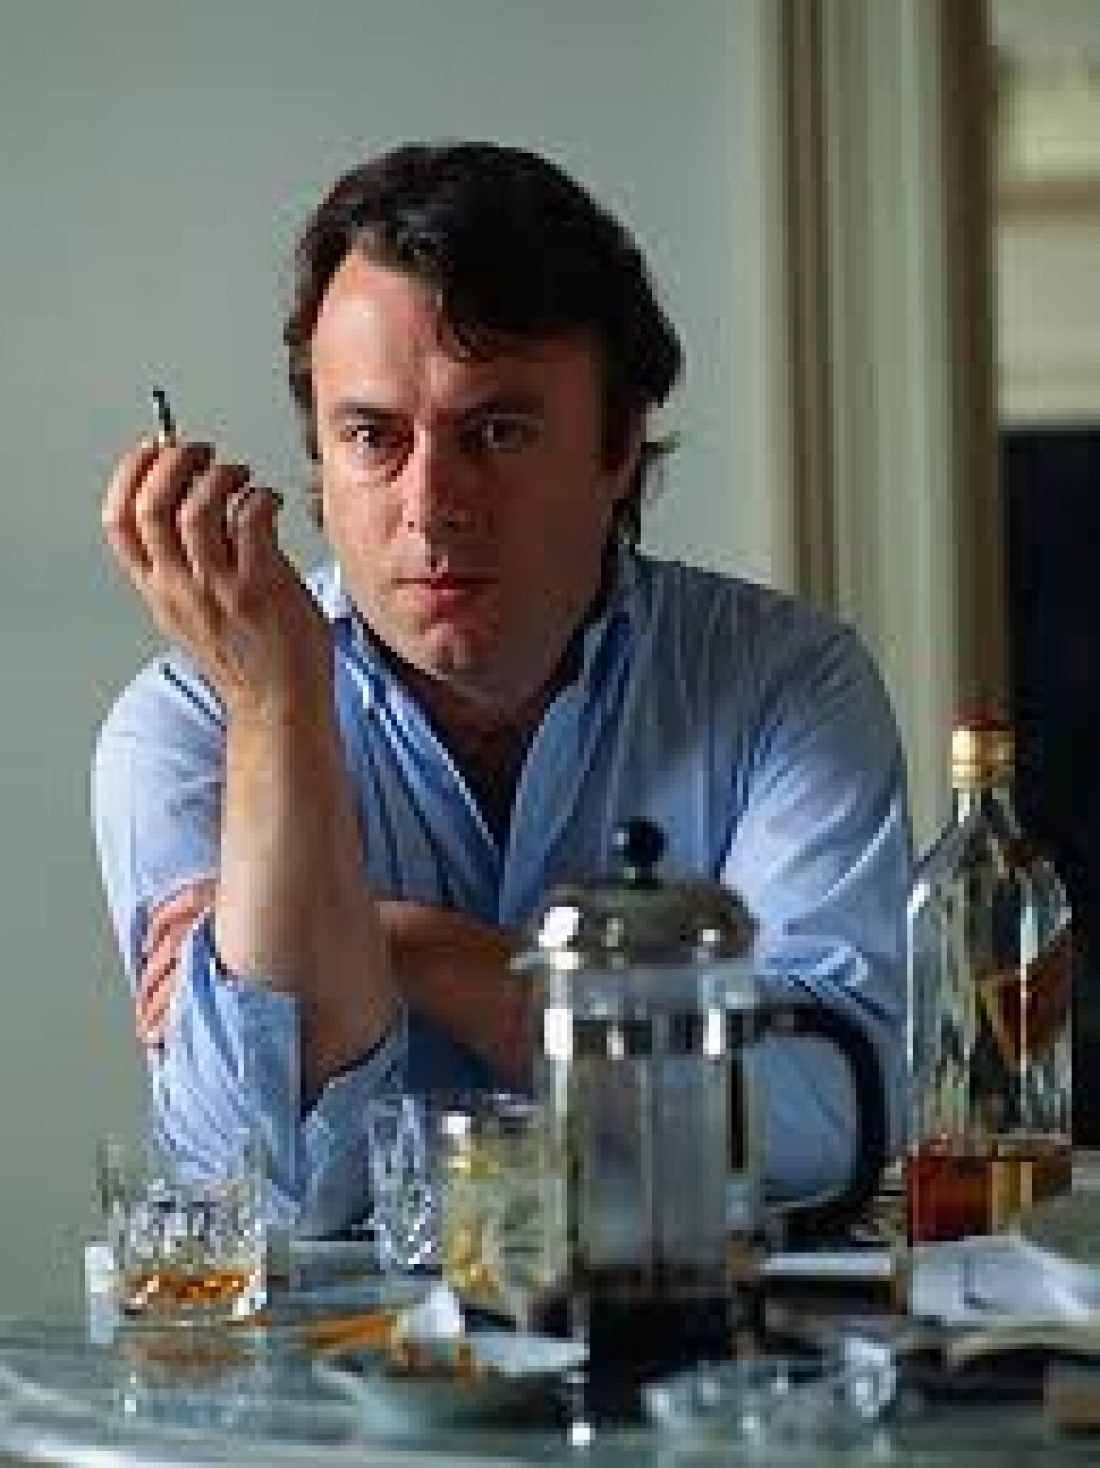 A picture of Hitchens at a table, smoking, surrounded by whisky and looking focused yet unimpressed (and gorgeous in my humble opinion)